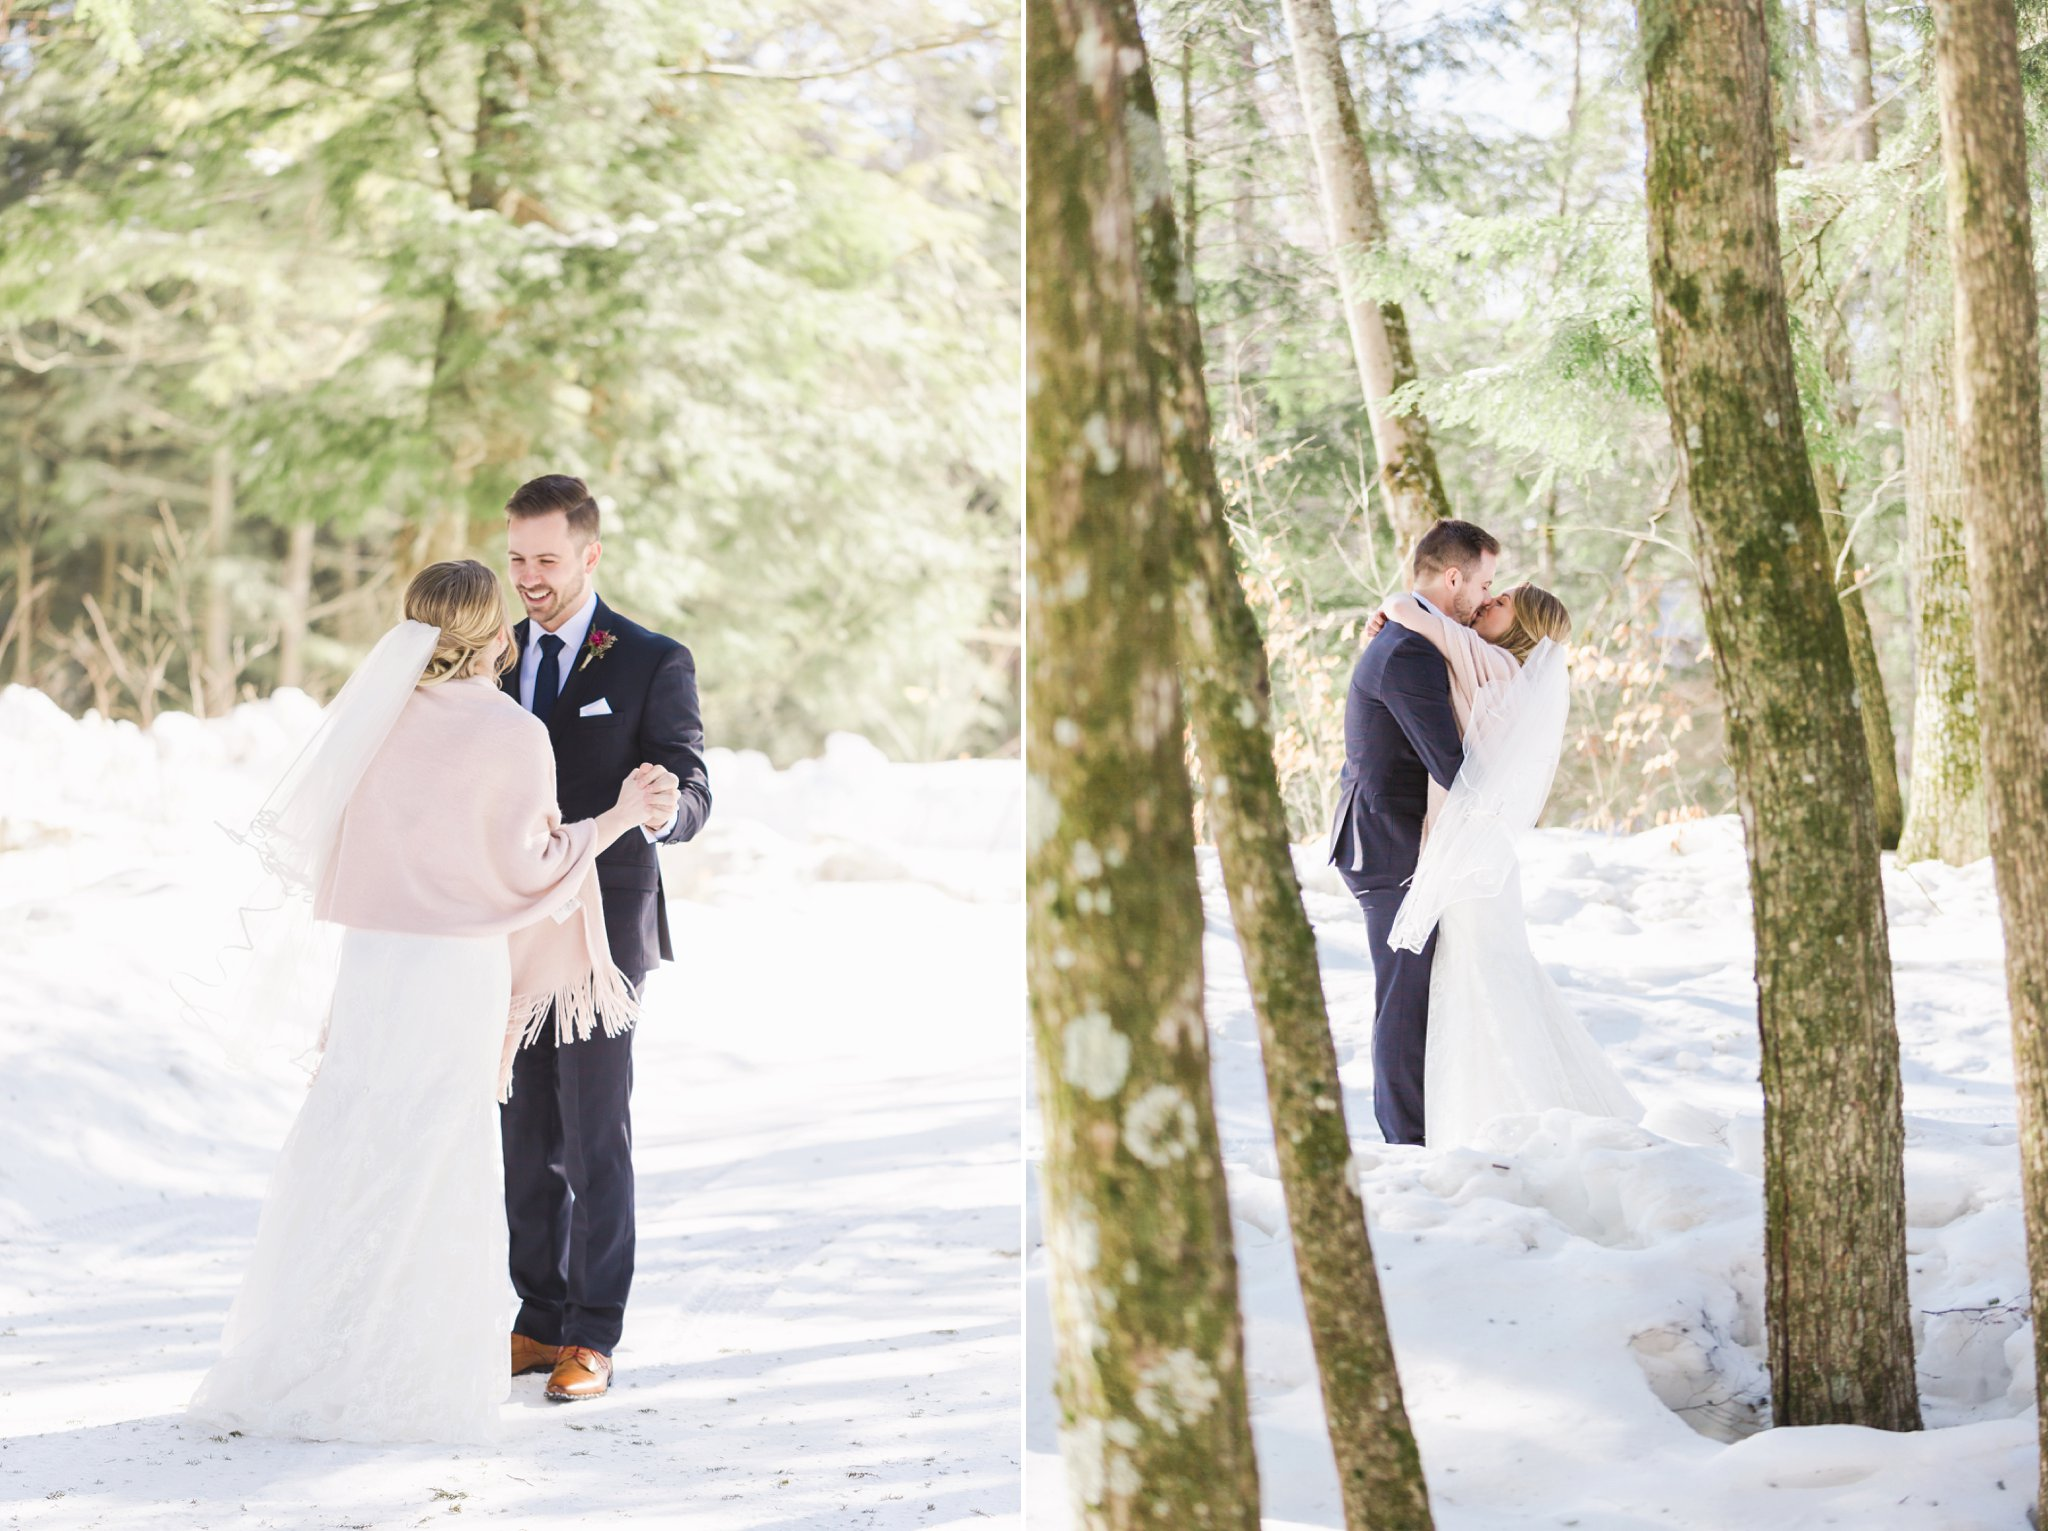 The first look at the Winter wedding at Le Belvedere